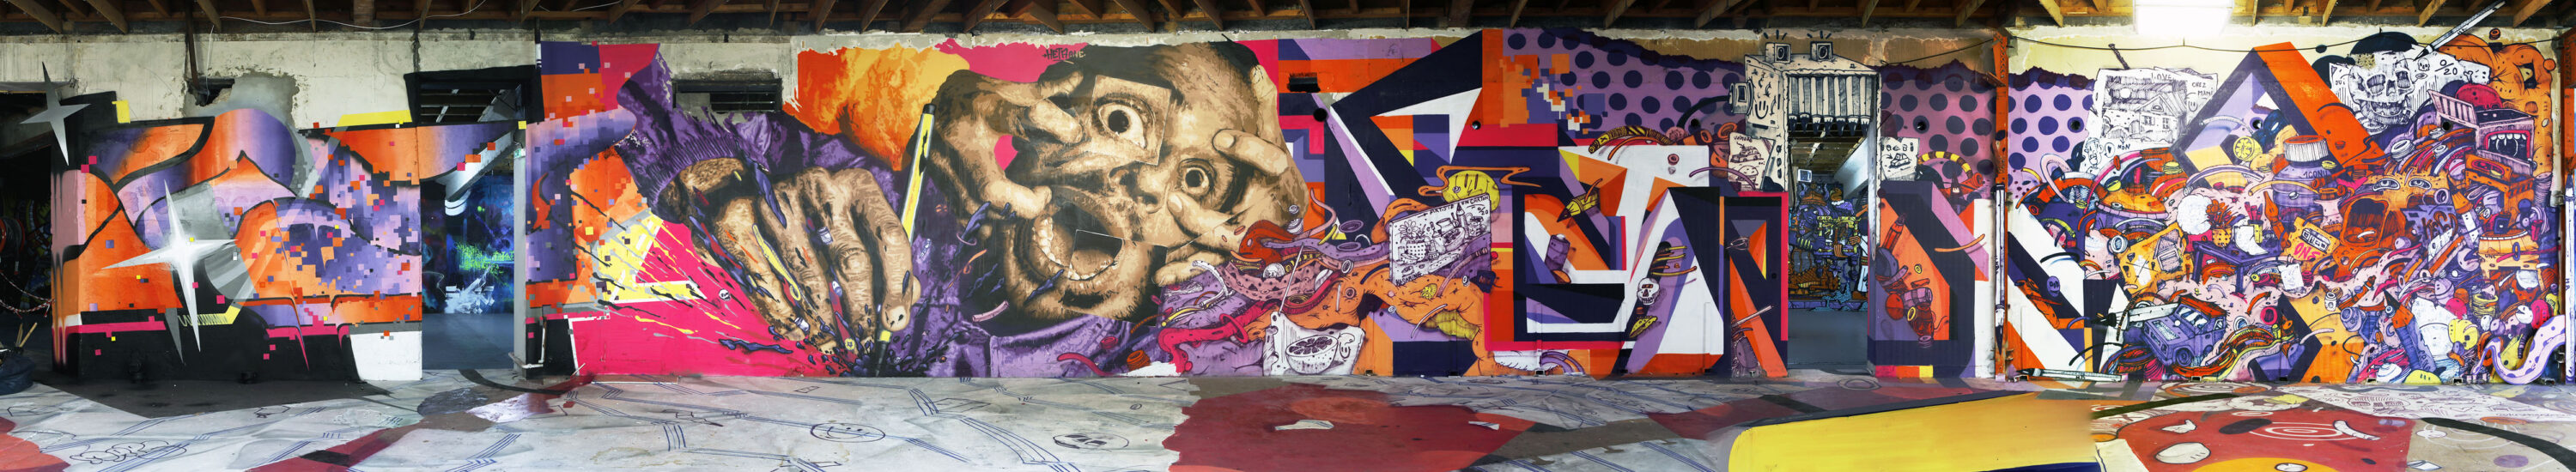 LHH-Zoo-Art-Show-XXL-Panorama-fresque